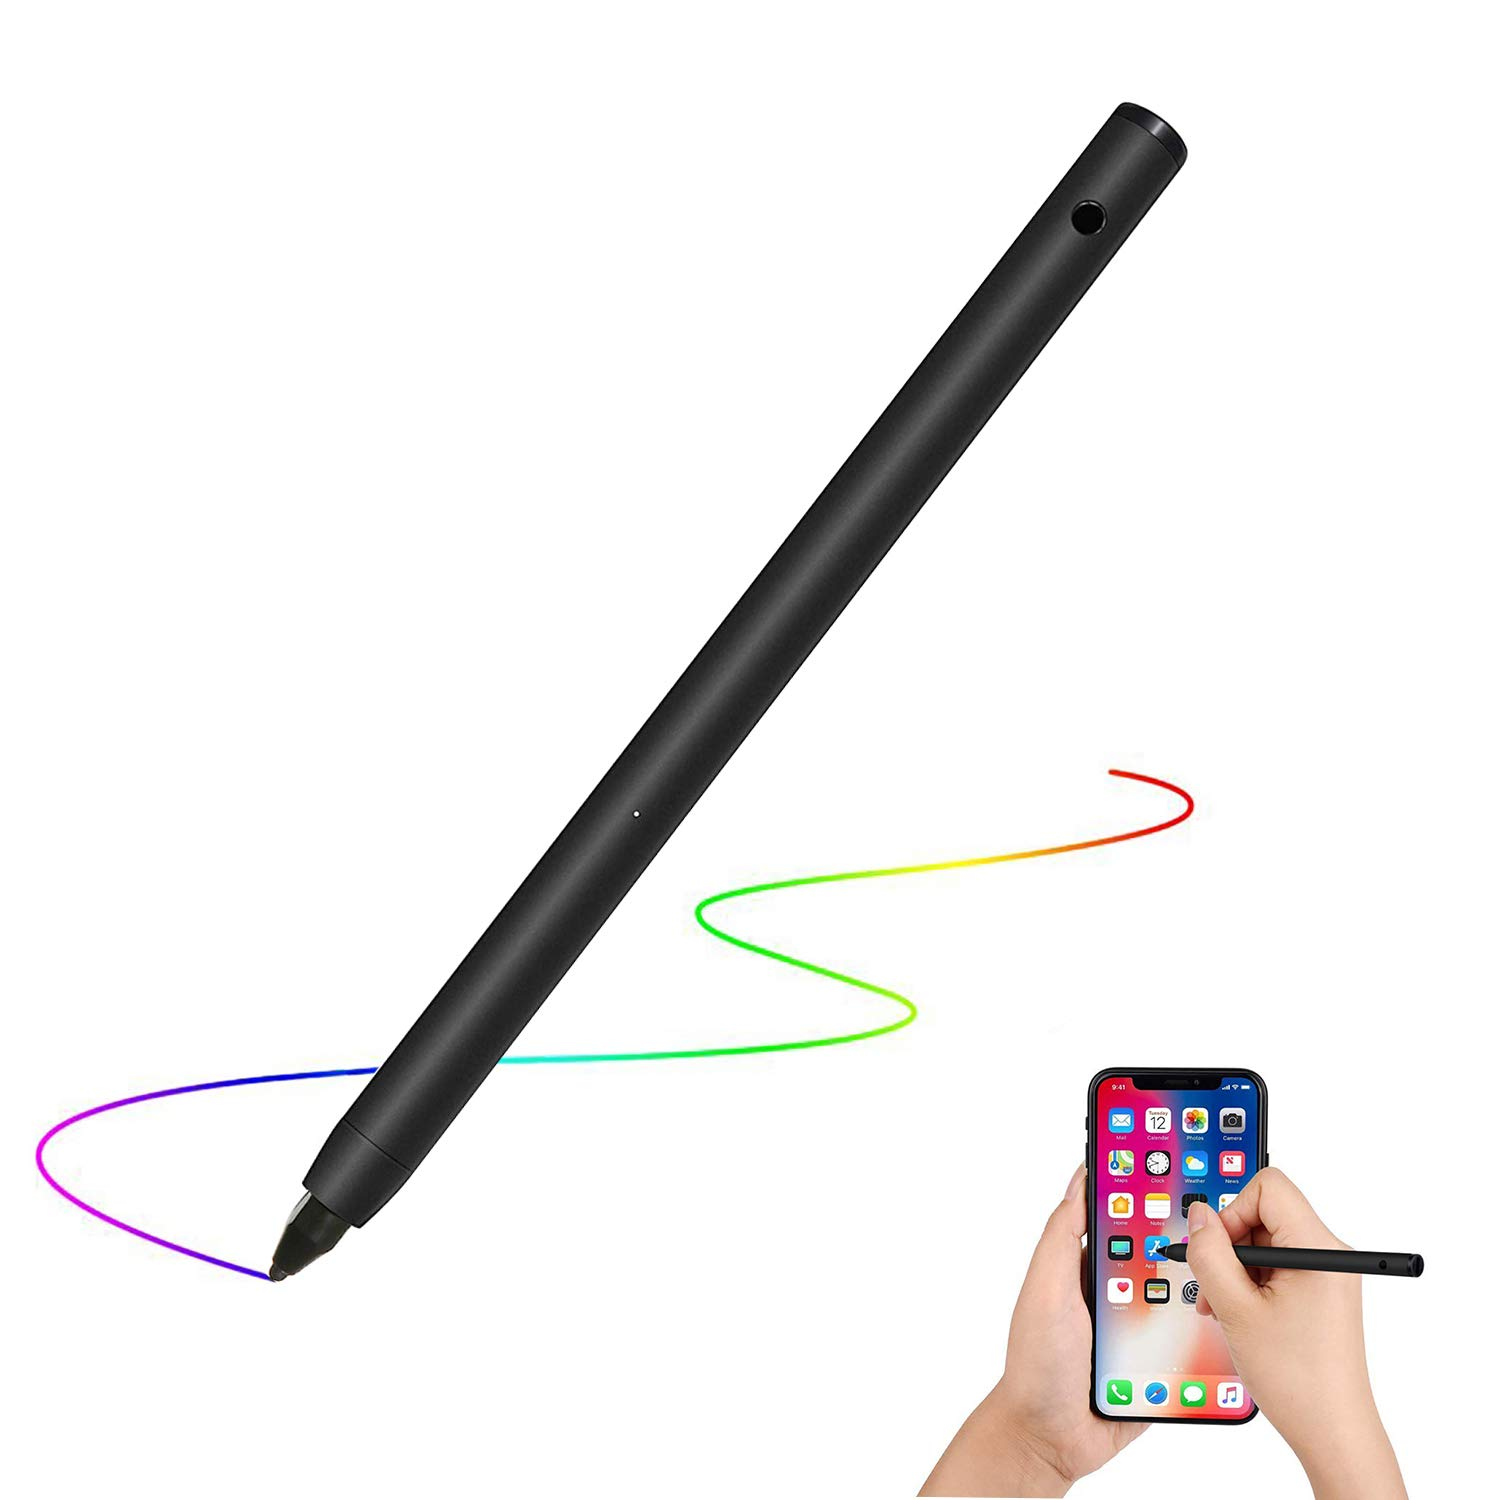 Active Stylus Digital Pen with Adjustable Fine Tip Rechargeable for Accurate Writing/Drawing on iPhone/iPad/Samsung/Surface/Android Touchscreen, Smartphones, Tablets, Notebooks (Black) by desin